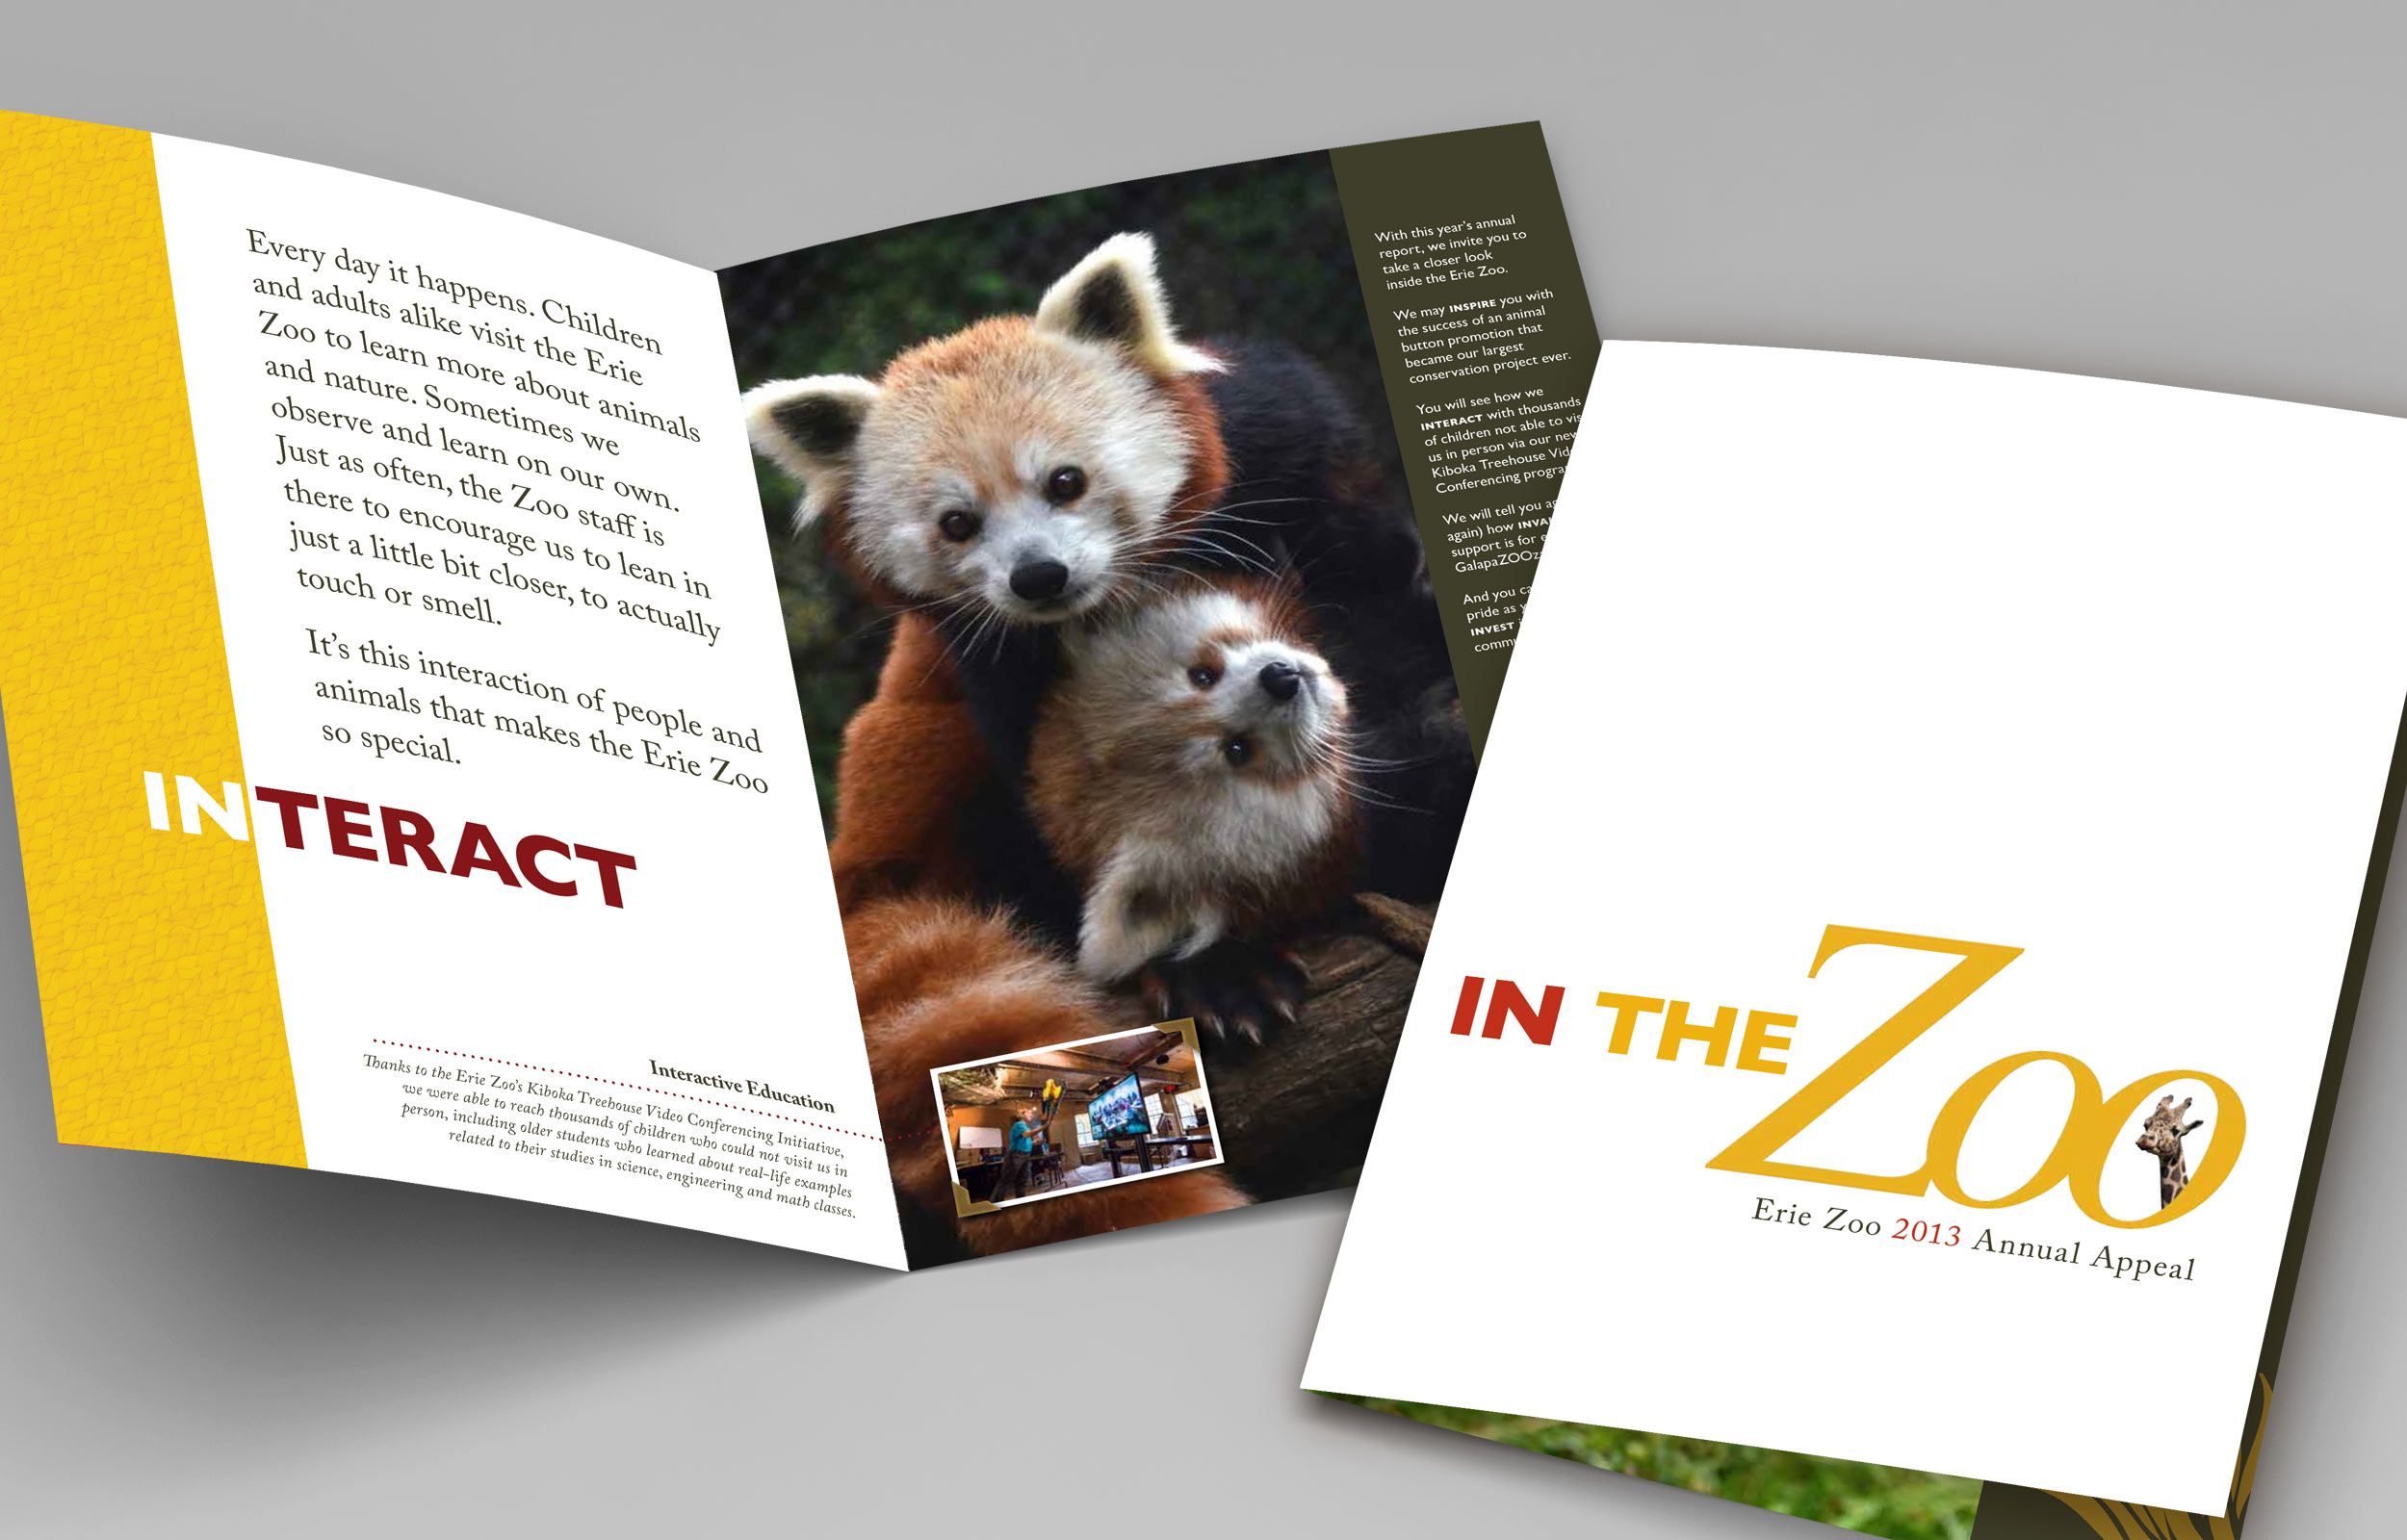 https://papaadvertising.com/wp-content/uploads/2015/05/zoo_annual_2013.jpg